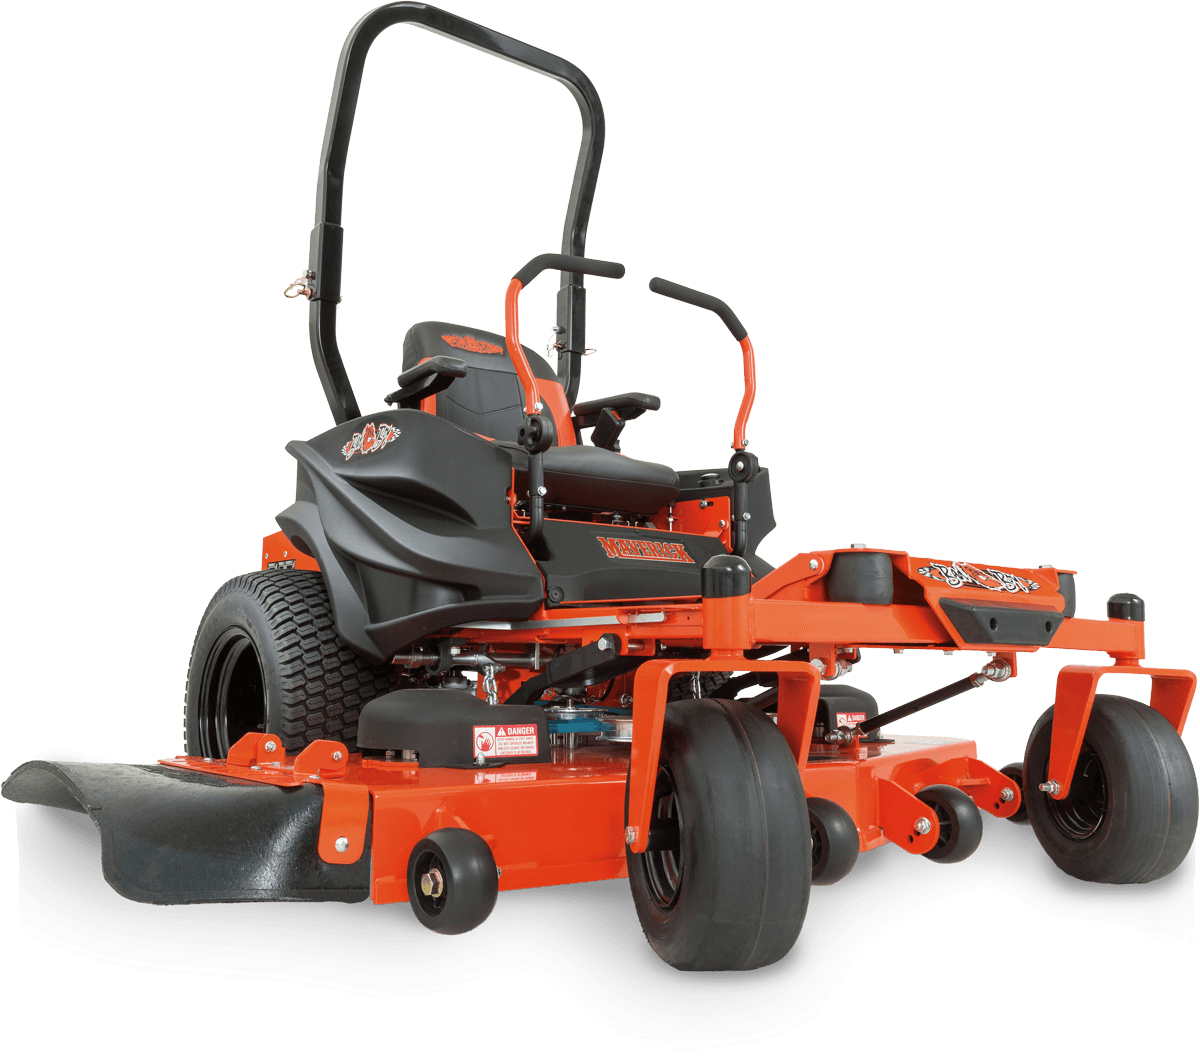 New 2016 Bad Boy Mowers 4800 (Kawasaki) Maverick Lawn